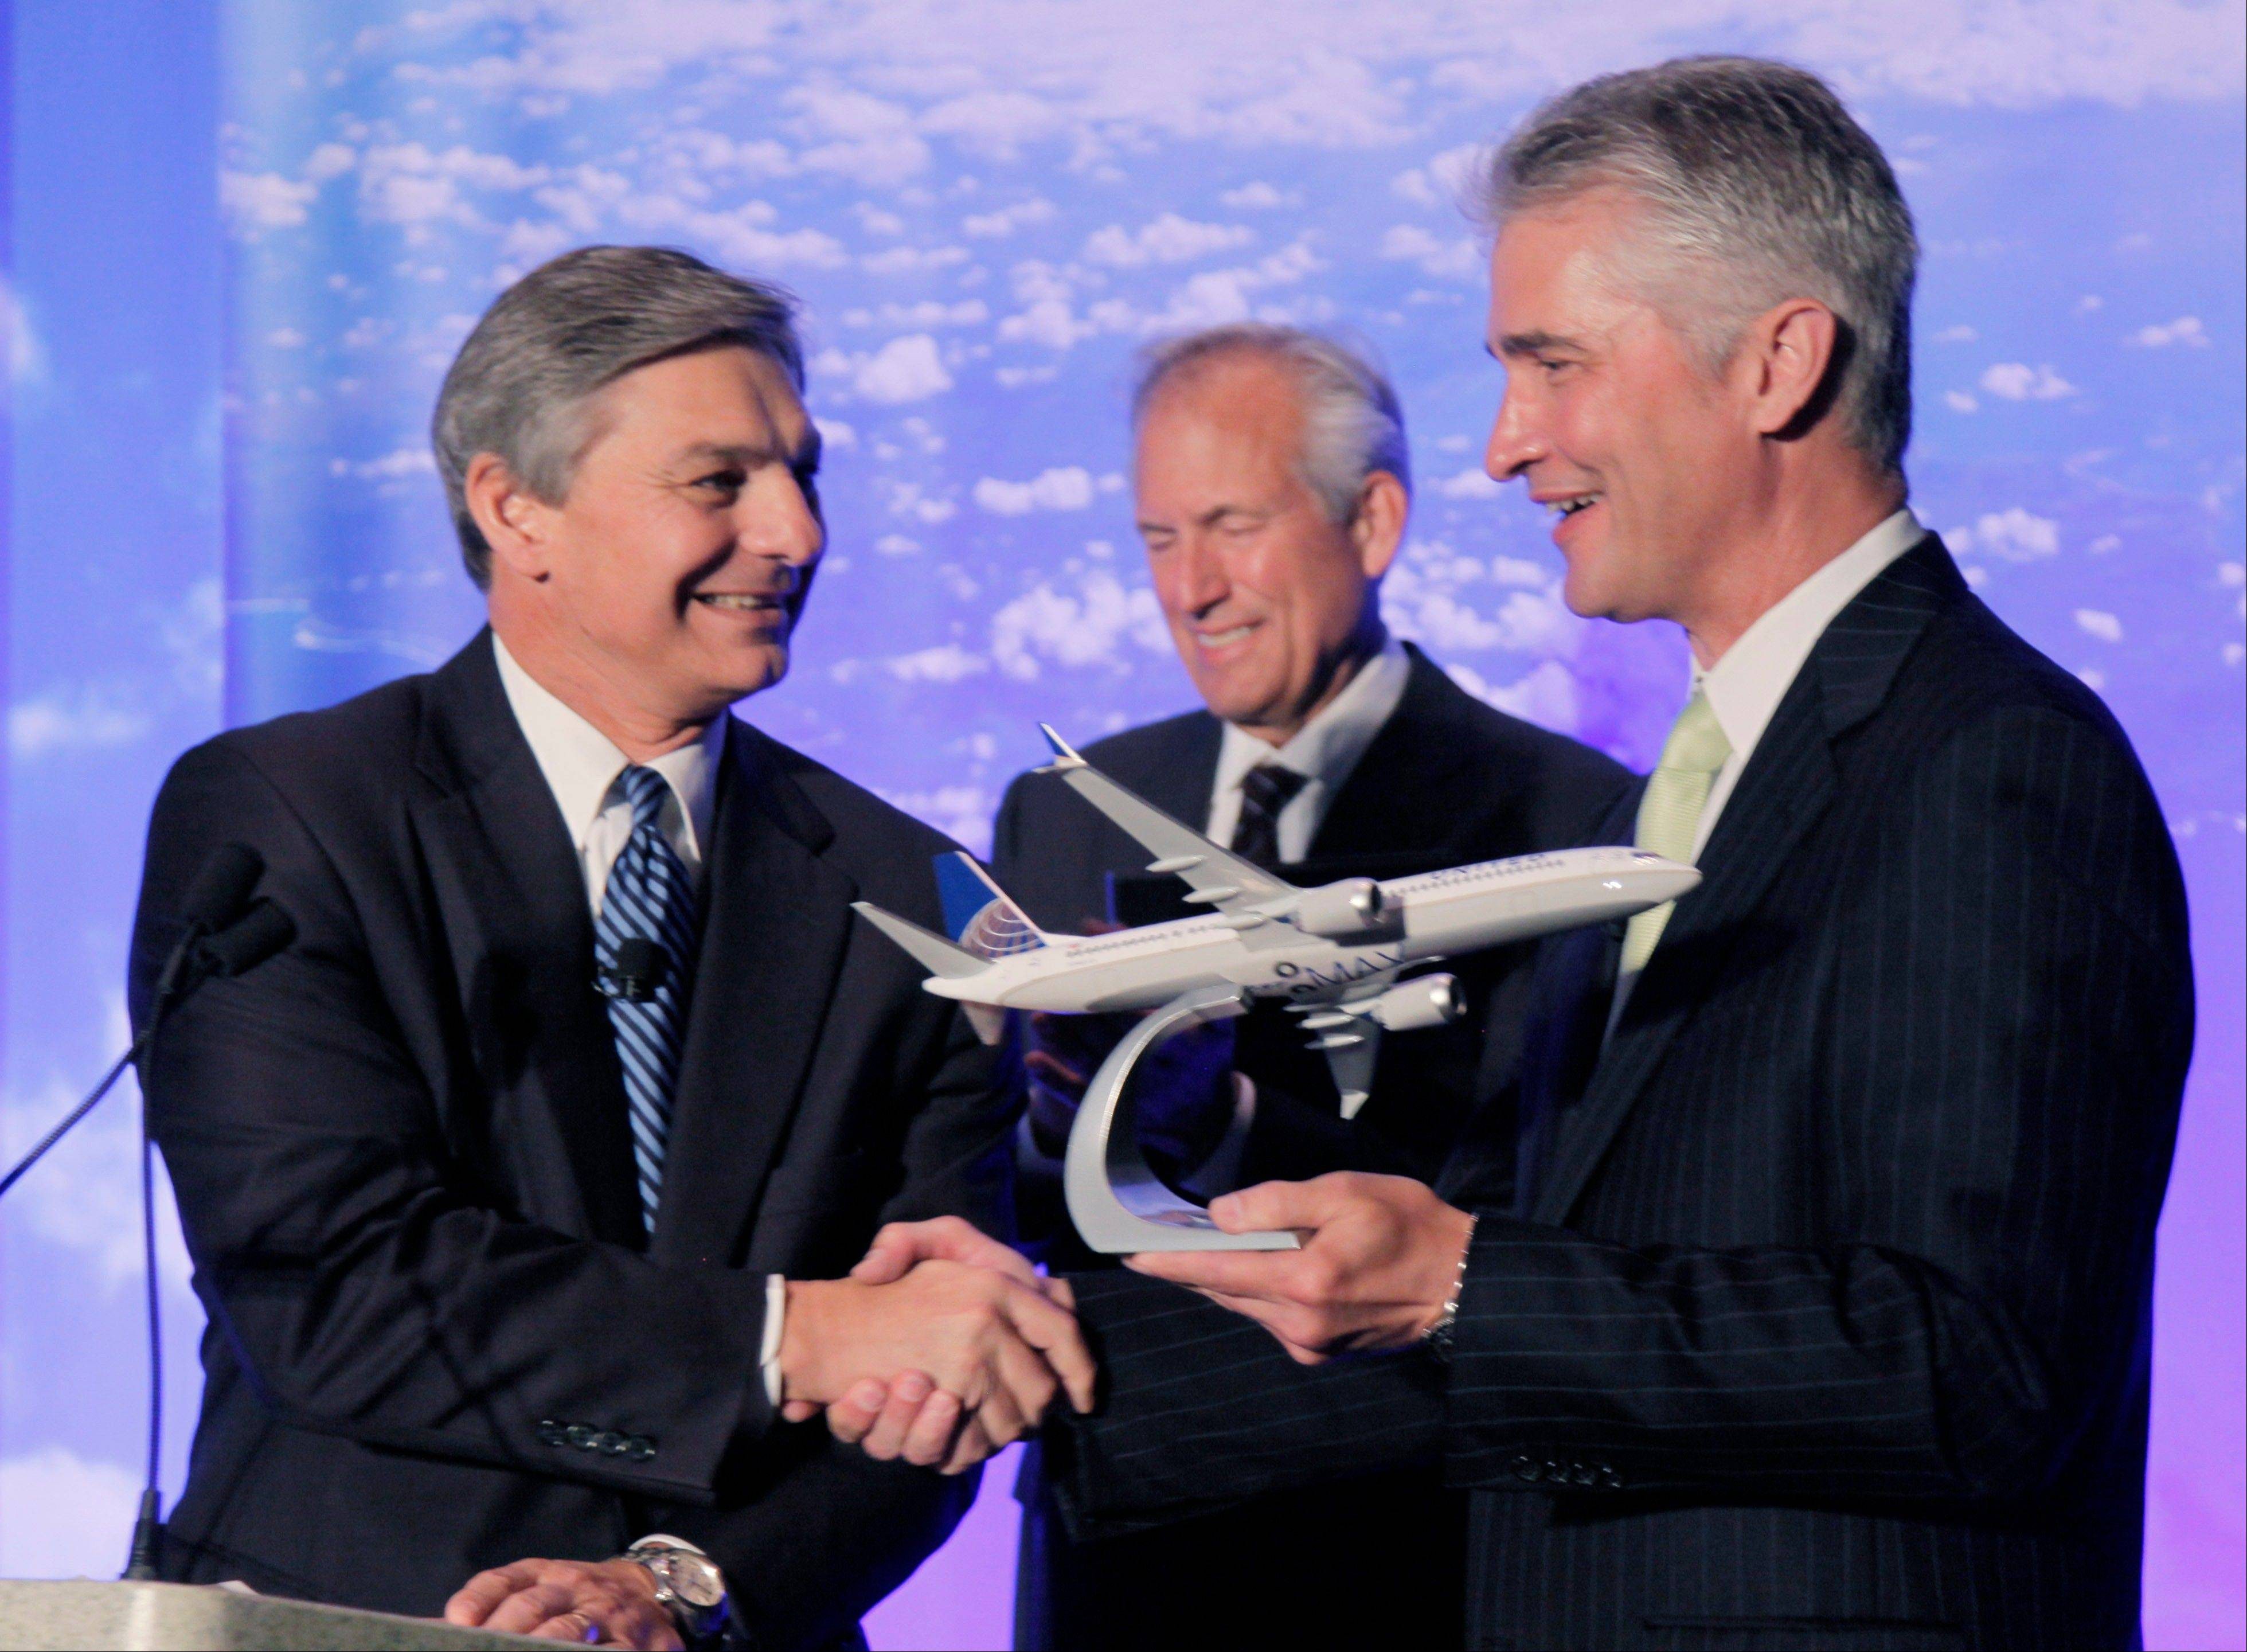 Boeing Commercial Airplanes CEO Ray Conner, left, presents a model of Boeing's new 737 Max 9 to United Airlines CEO Jeff Smisek during a news conference as Boeing CEO Jim McNerney looks on, Thursday in Chicago.